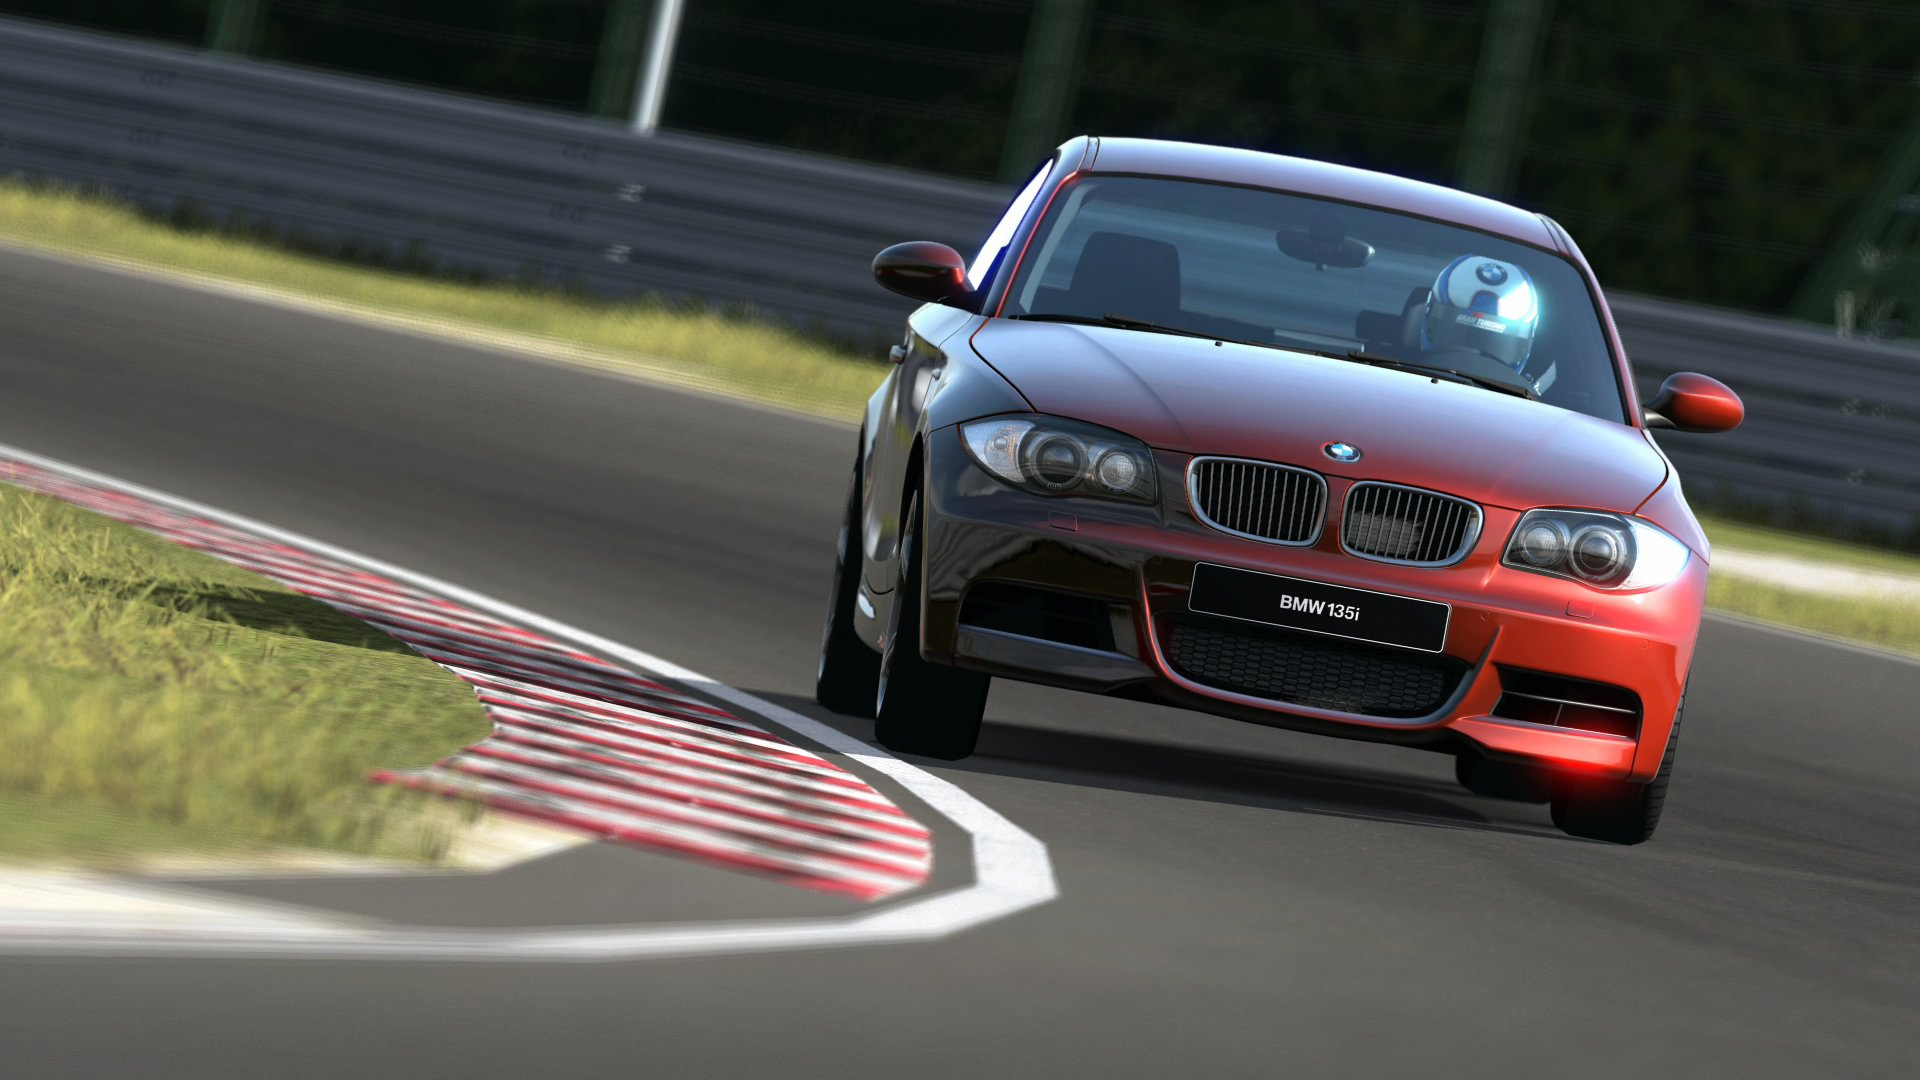 This Weeks New Releases 121 127 Gran Turismo 6 Tiny Brains